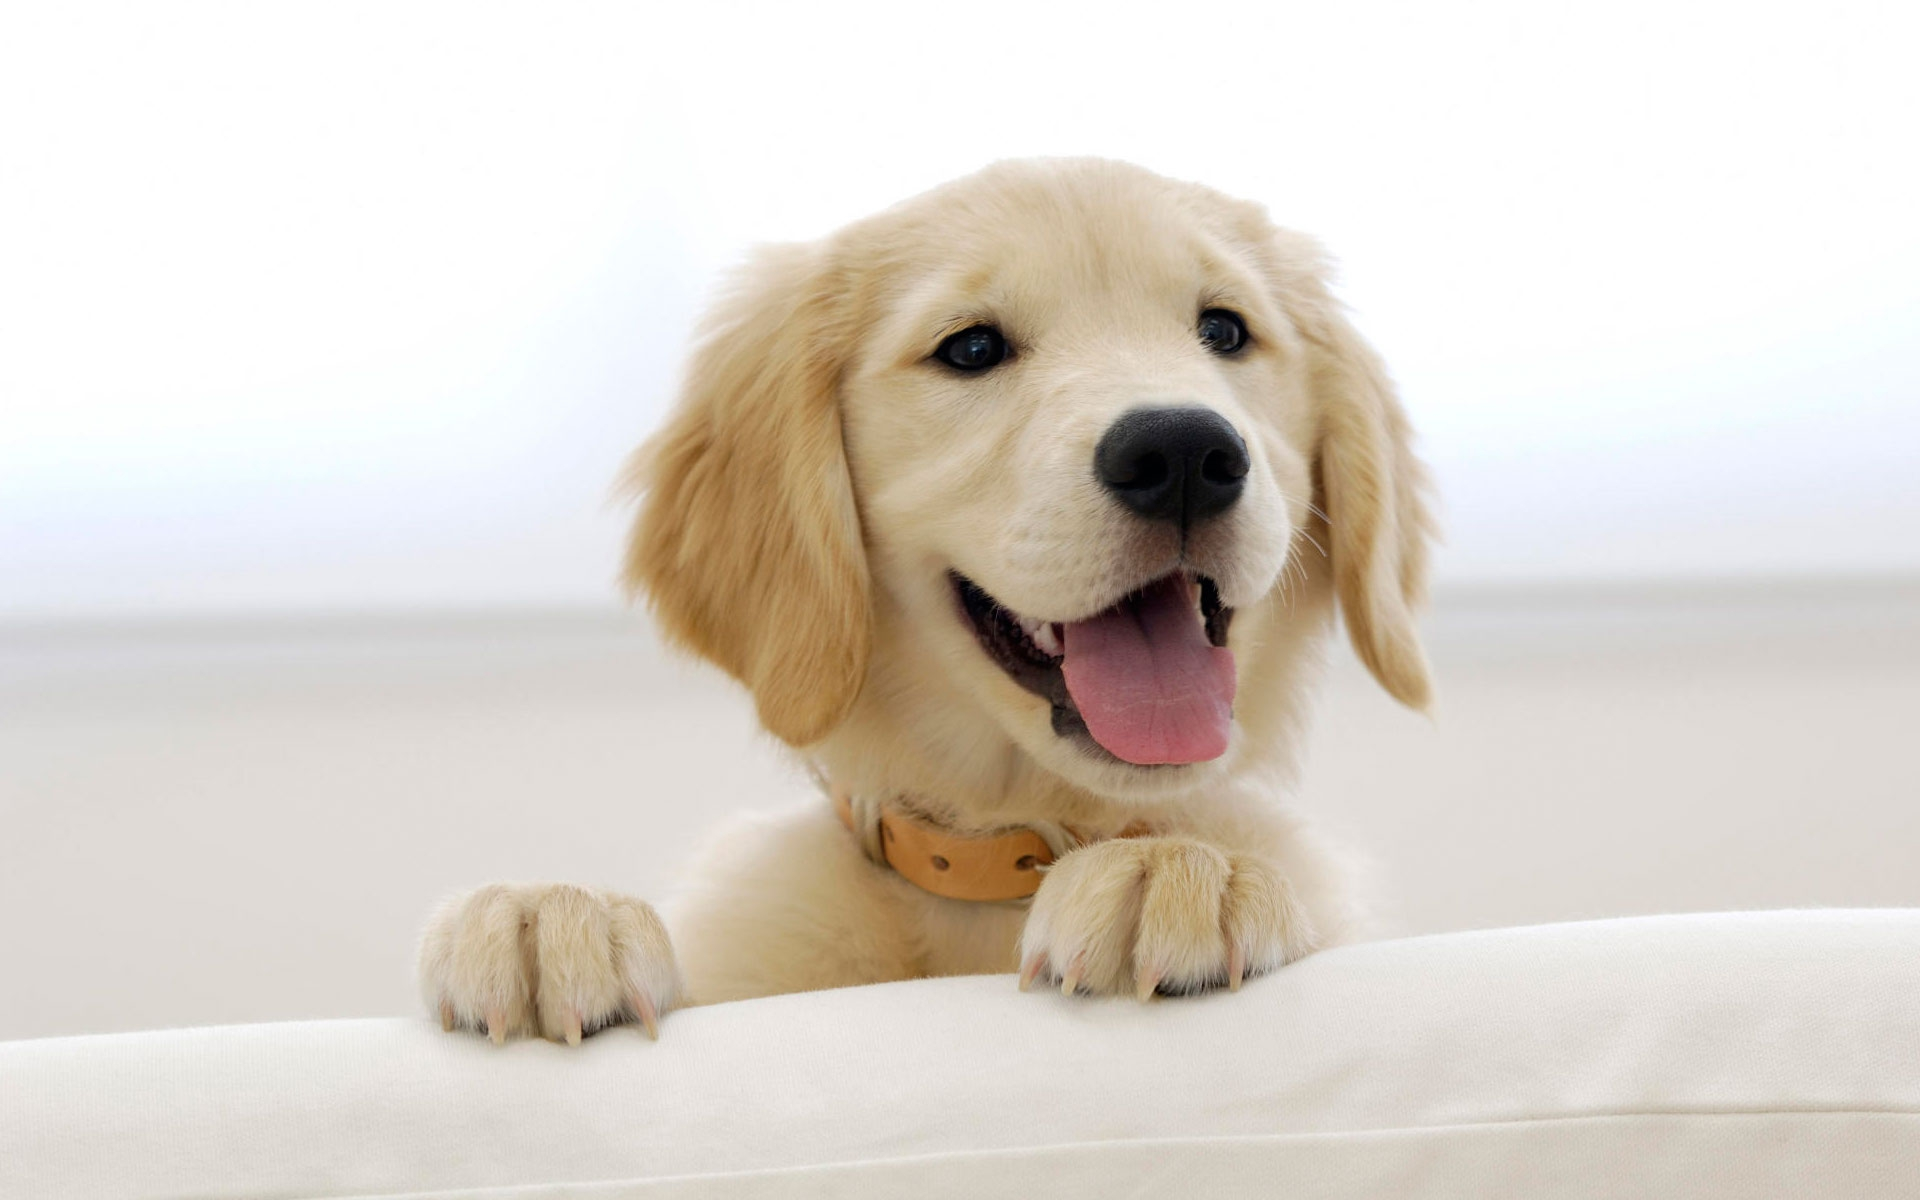 click to free download the wallpaper--Golden Retriever Puppy Image 1920X1200 free wallpaper download